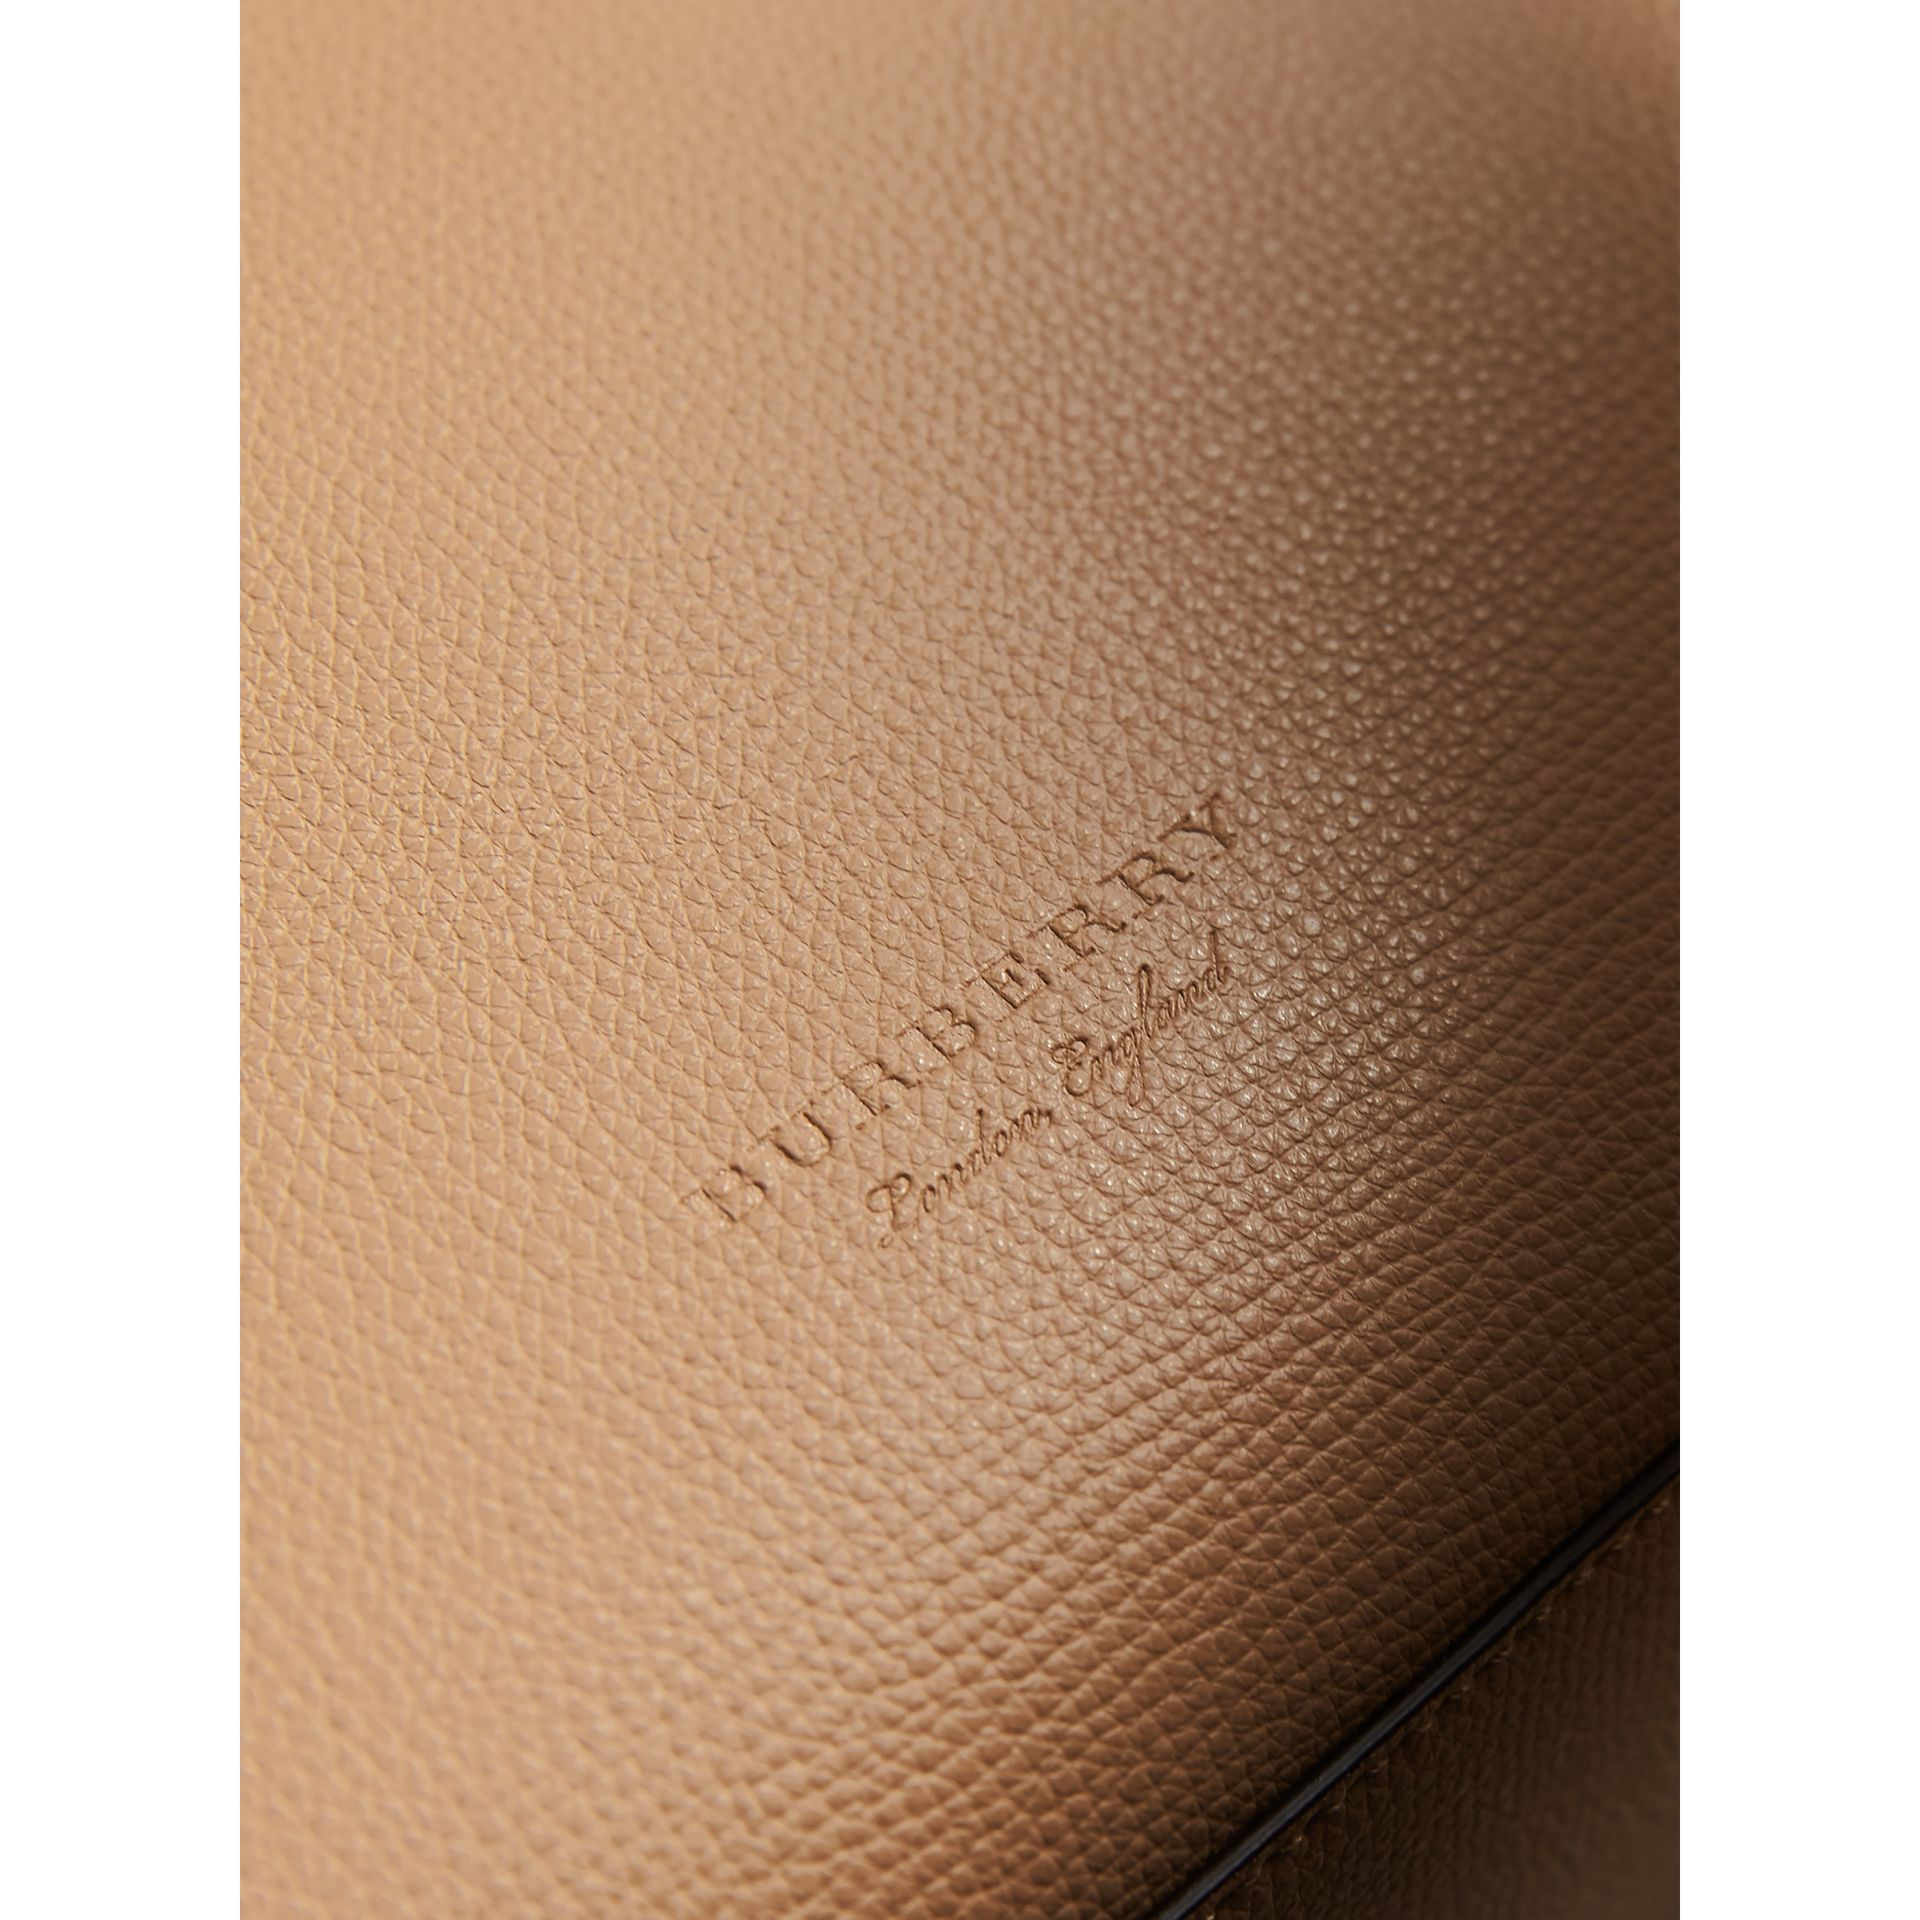 Medium Coated Leather Tote in Mid Camel - Women | Burberry Hong Kong - gallery image 5